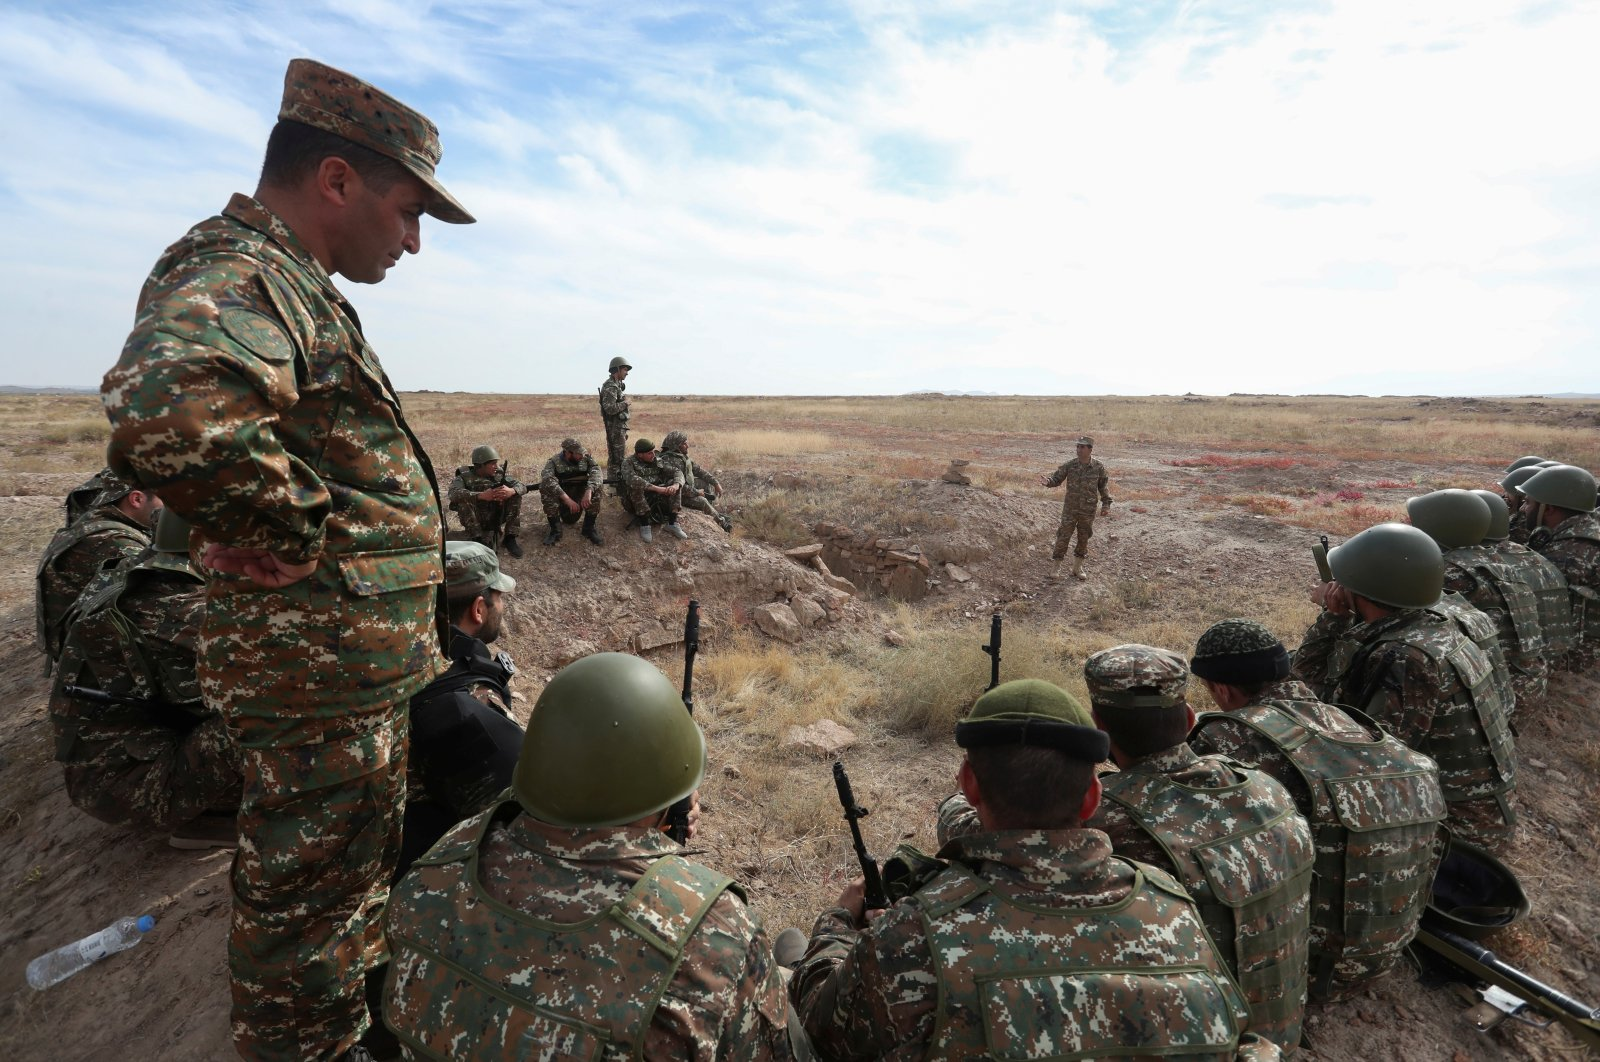 Armenian reservists undergo training at a firing range before their departure to the front line of the military conflict with the armed forces of Azerbaijan over the occupied Nagorno-Karabakh, near Yerevan, Armenia, Oct. 25, 2020. (Reuters Photo)